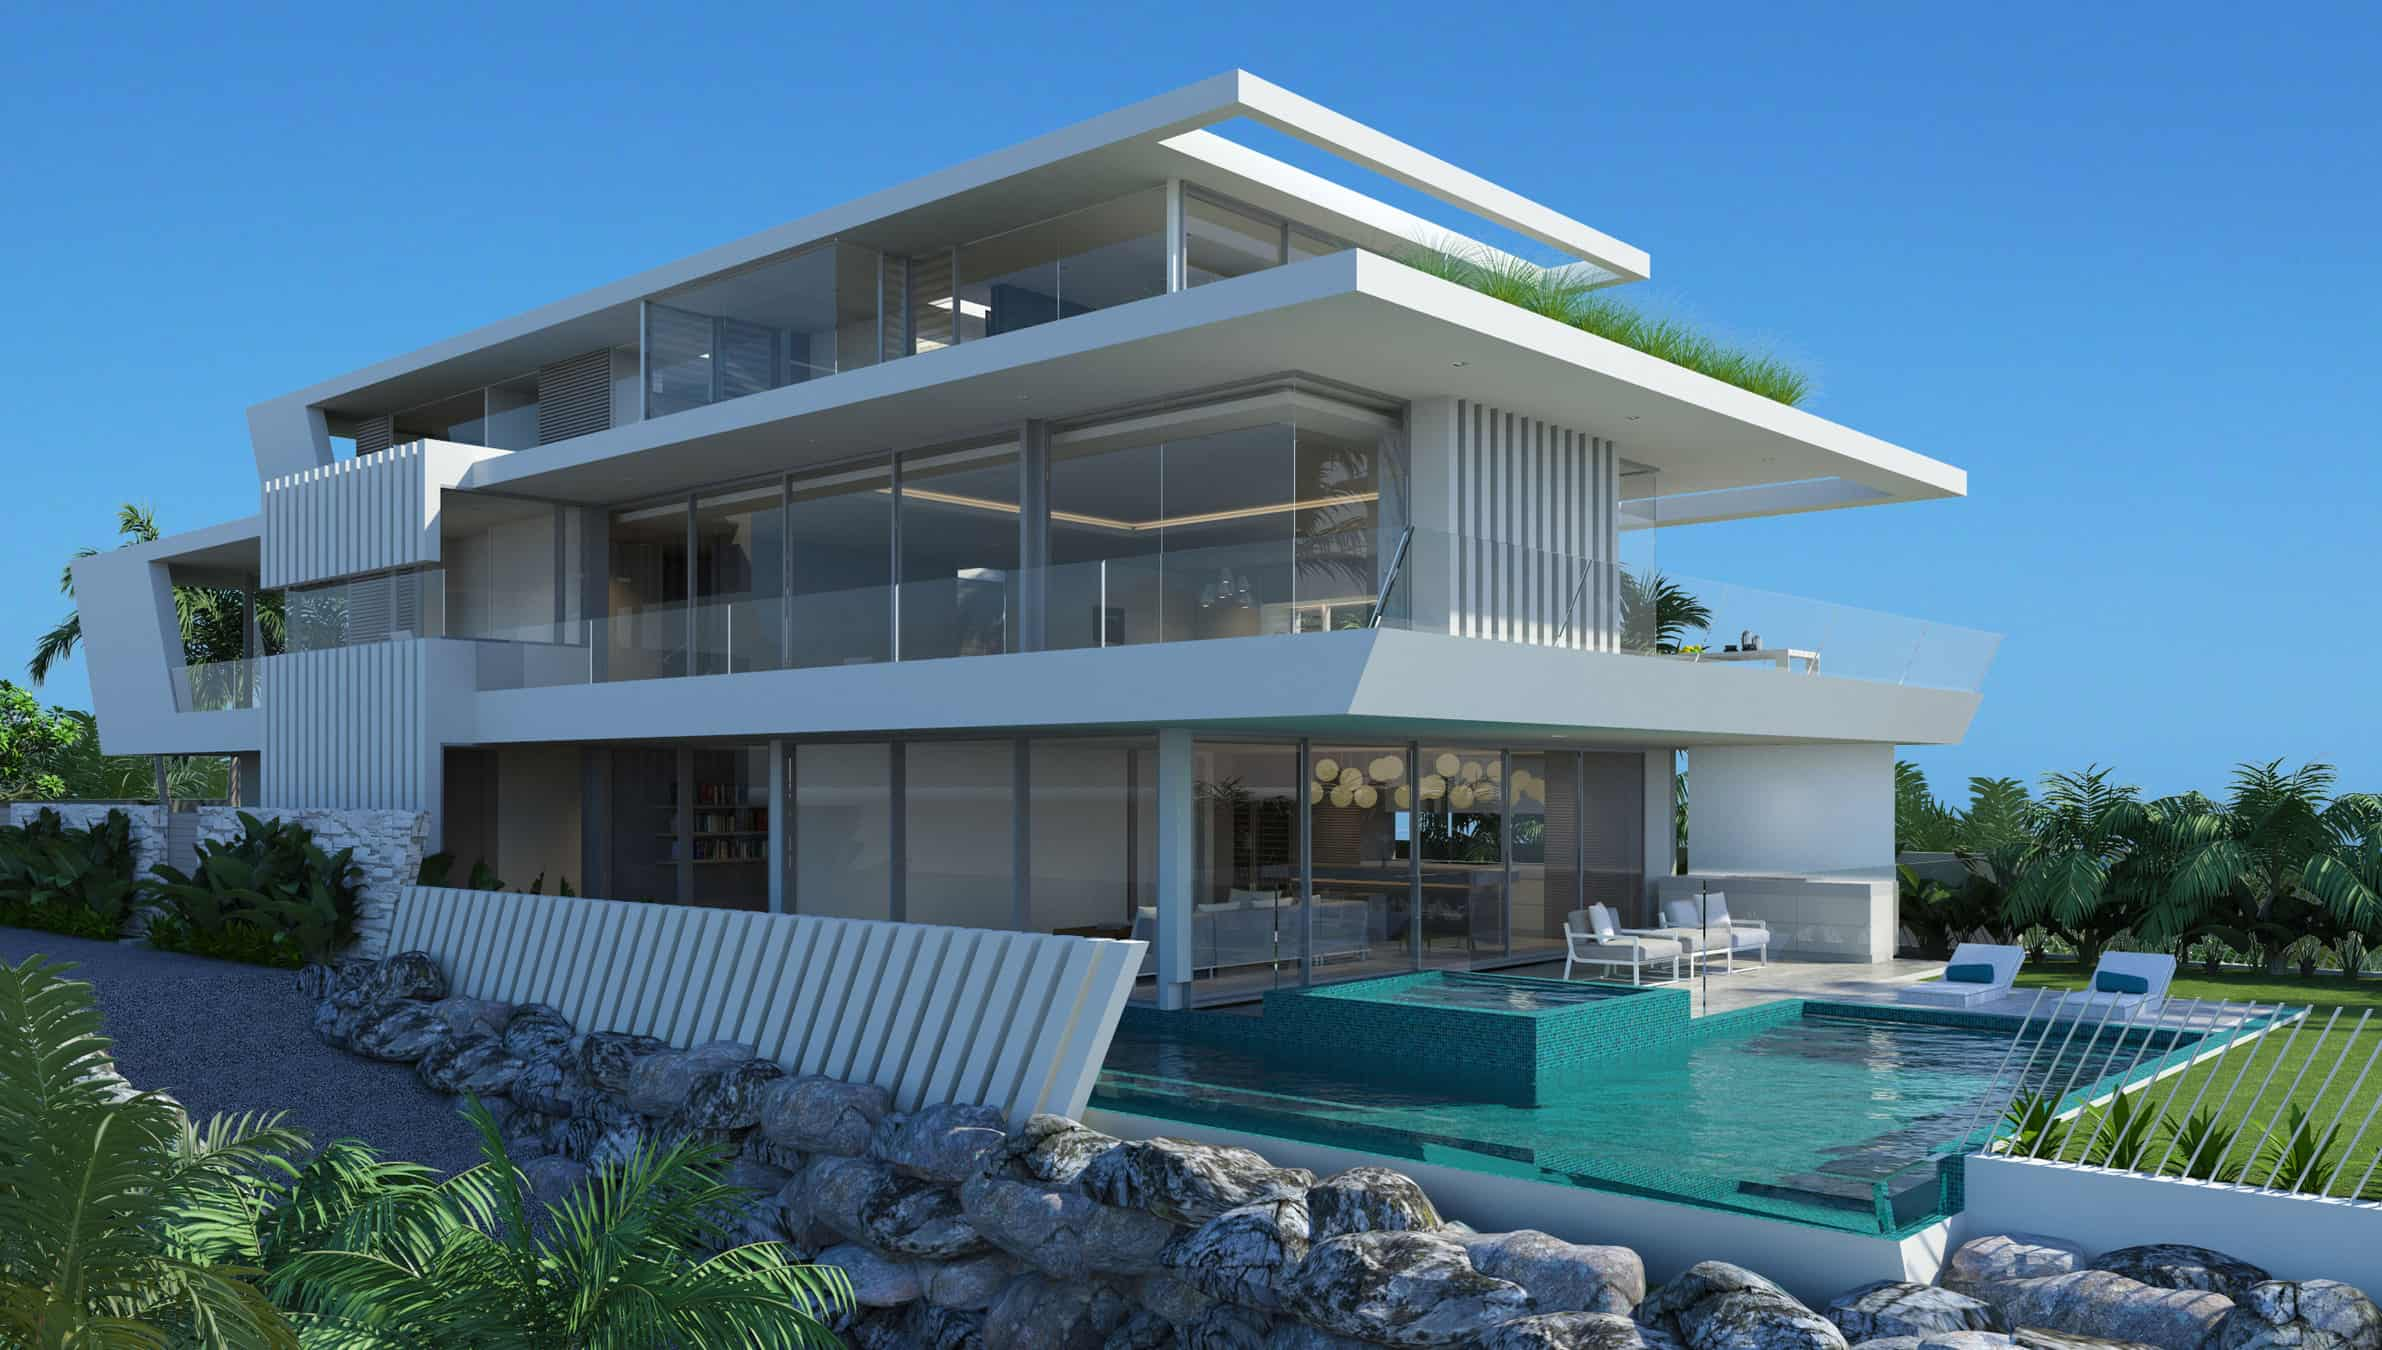 Curl curl house chris clout design for Beach house designs south coast nsw